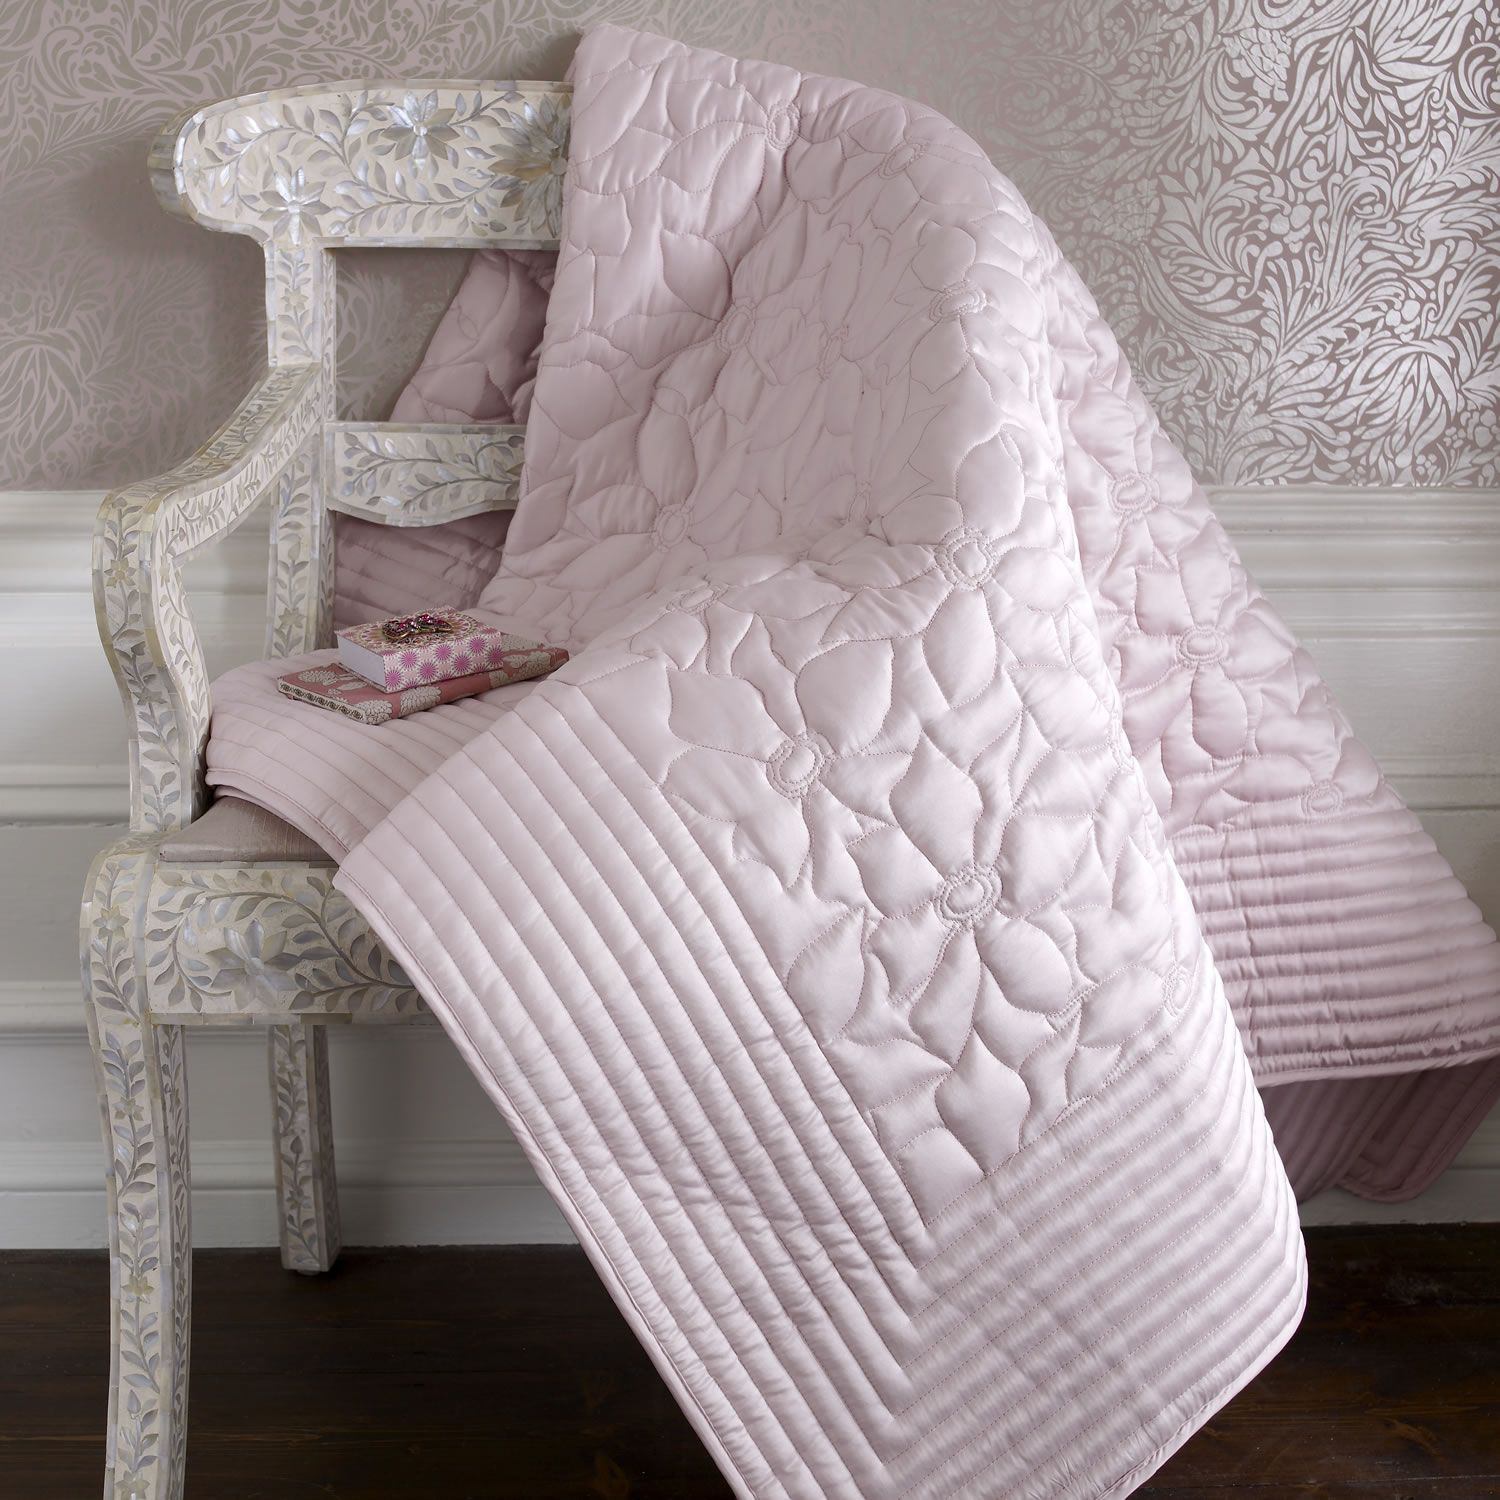 Dusky pink throw httpwwwworldstorescoukpMonsoon